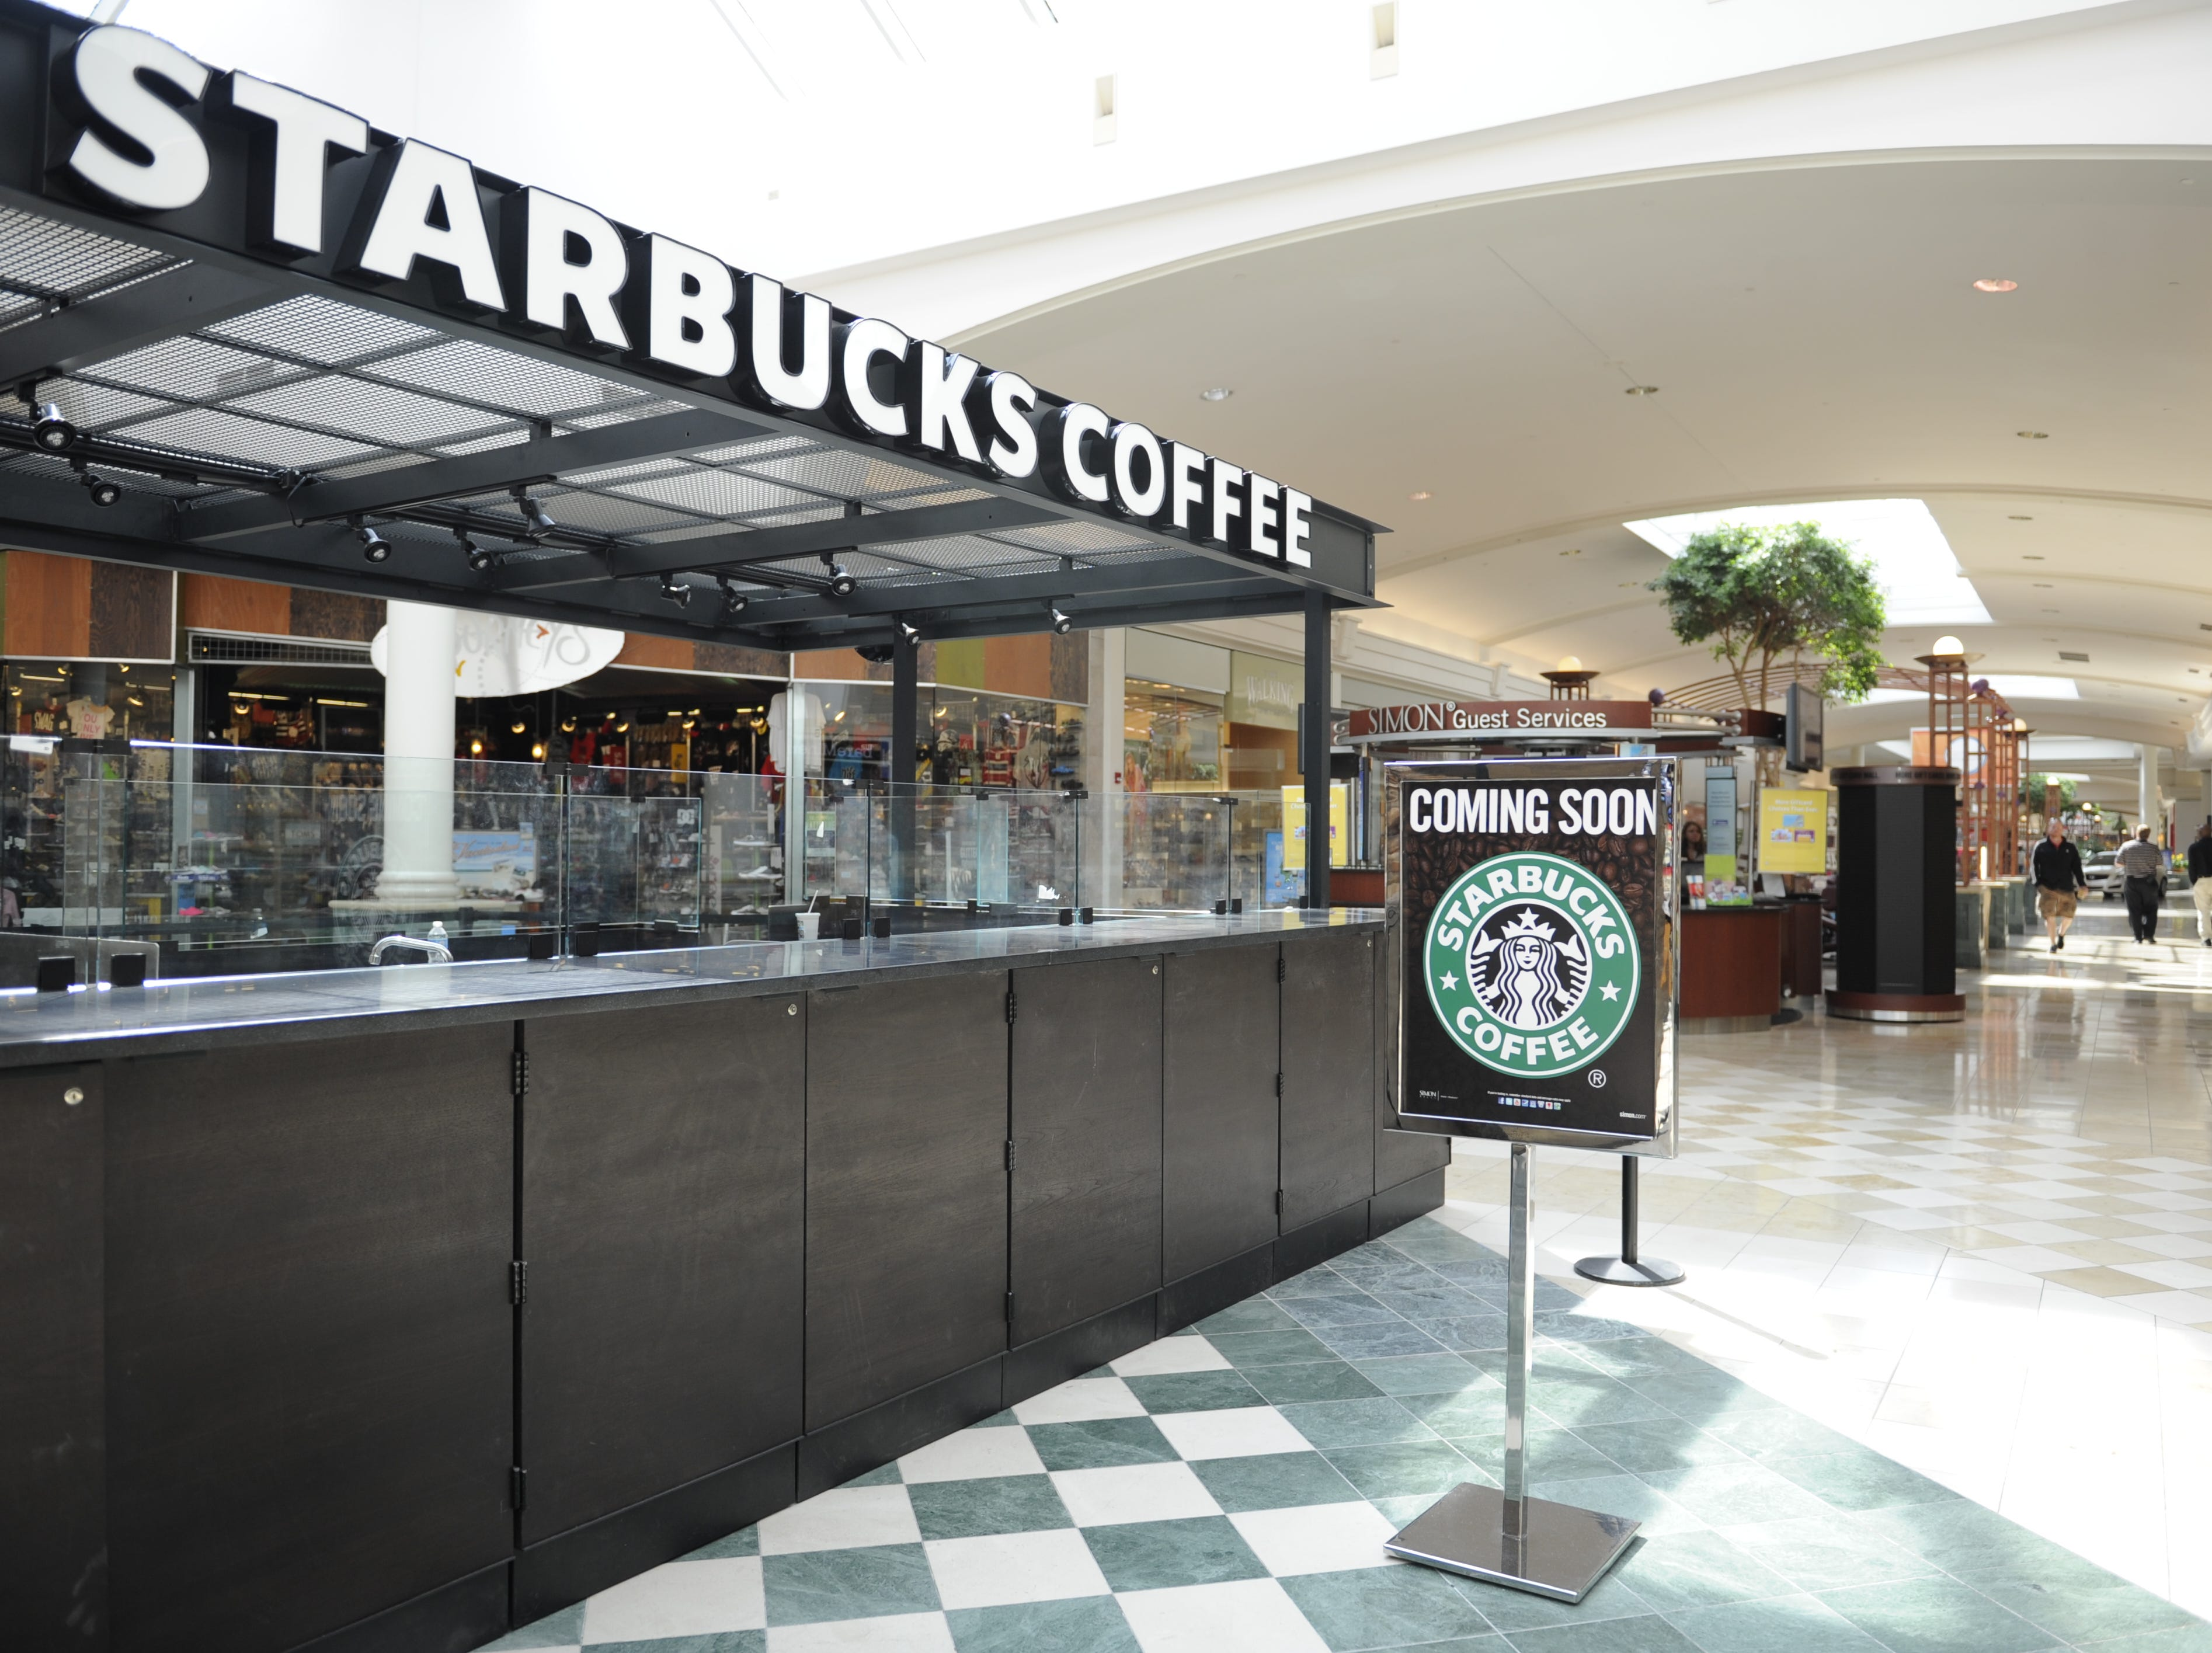 Starbucks Coffee is scheduled to open May 3rd in West Town Mall, near the food court.